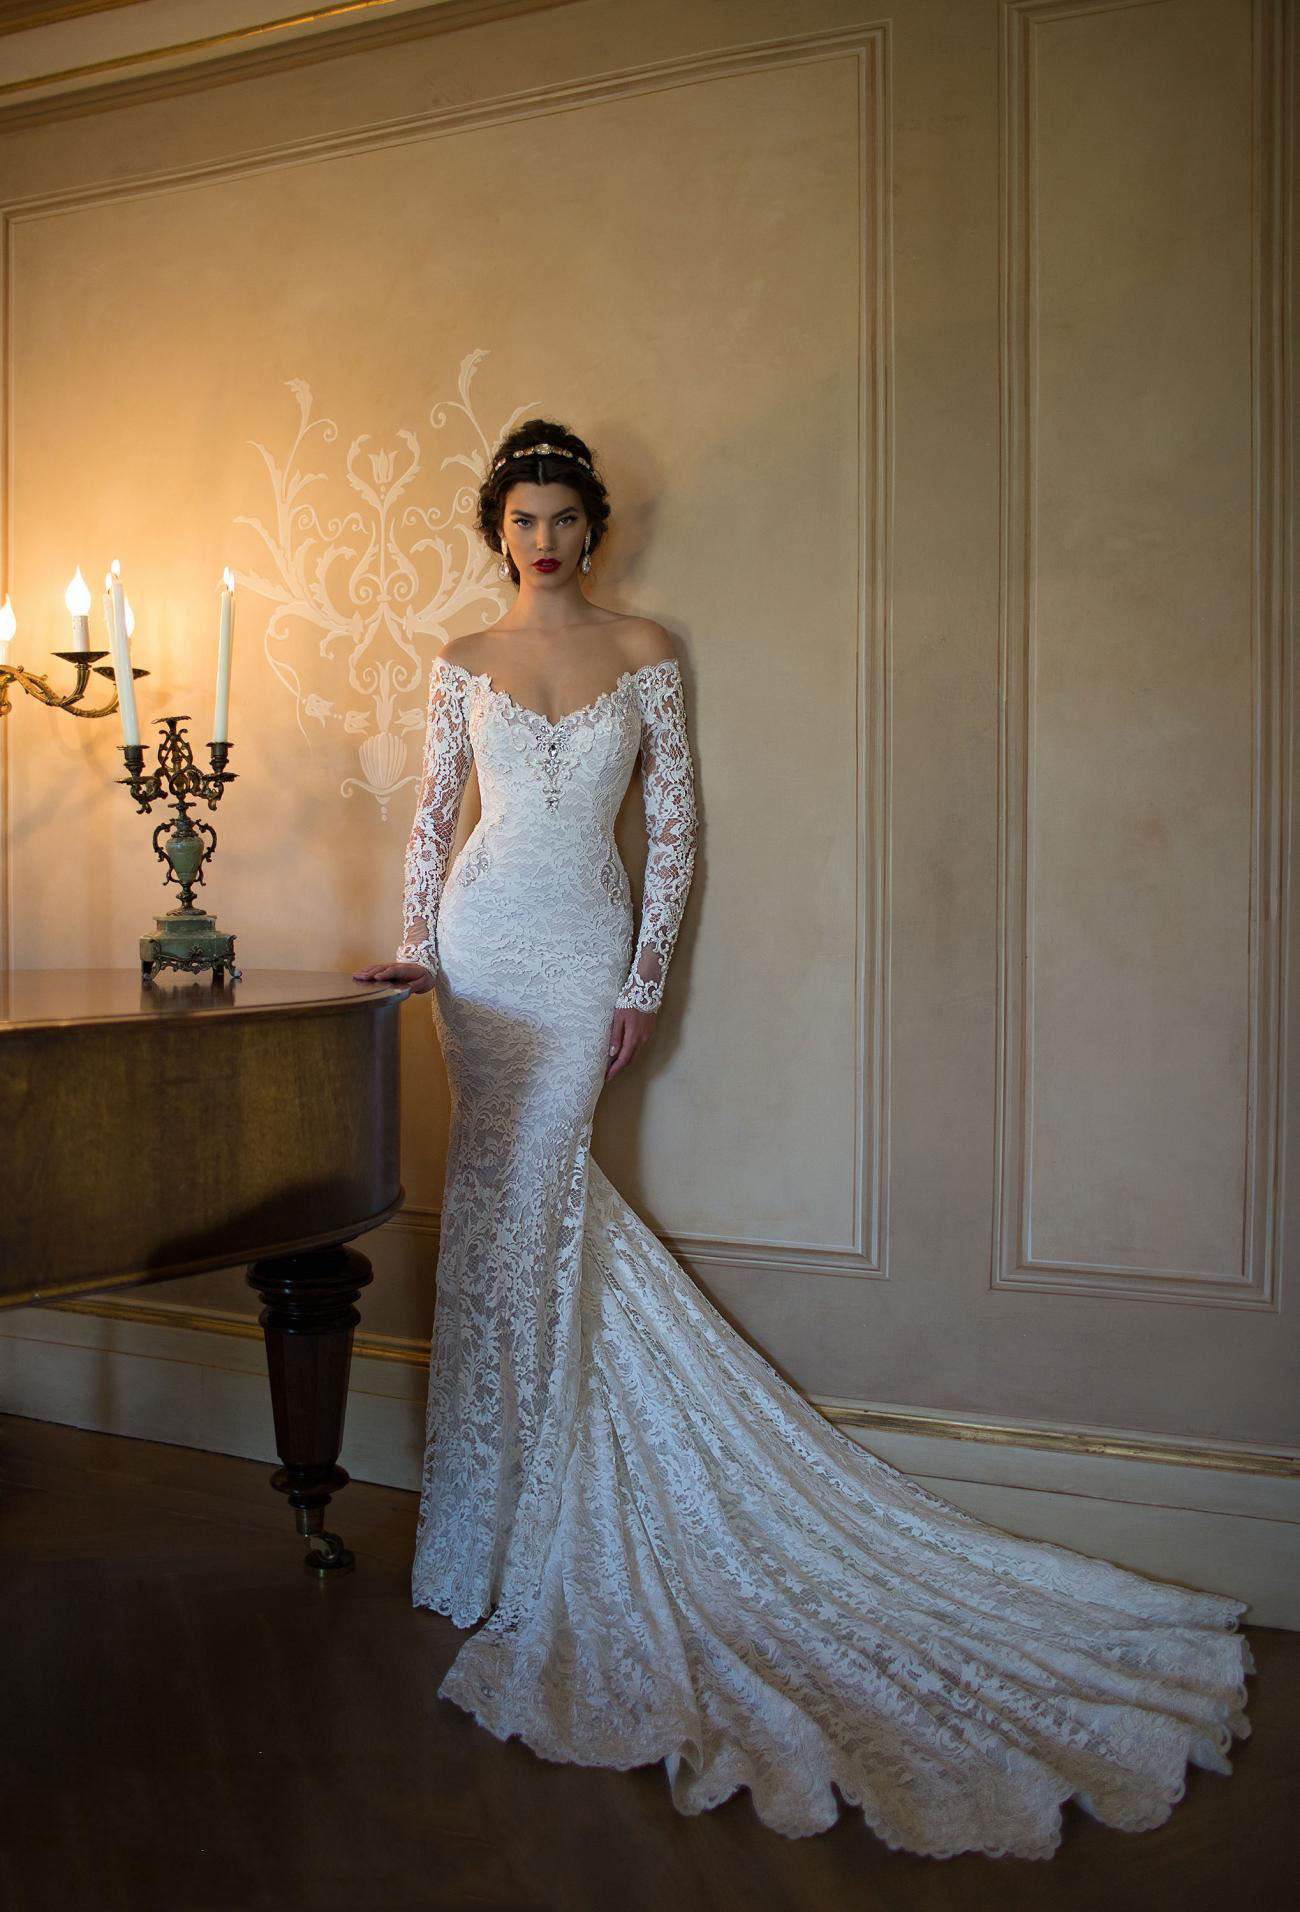 off the shoulder v neck crystal detailling lace mermaid wedding dress with long sleeves p white mermaid wedding dresses Off the Shoulder V Neck Crystal Detailling Lace Mermaid Wedding Dress with Long Sleeves